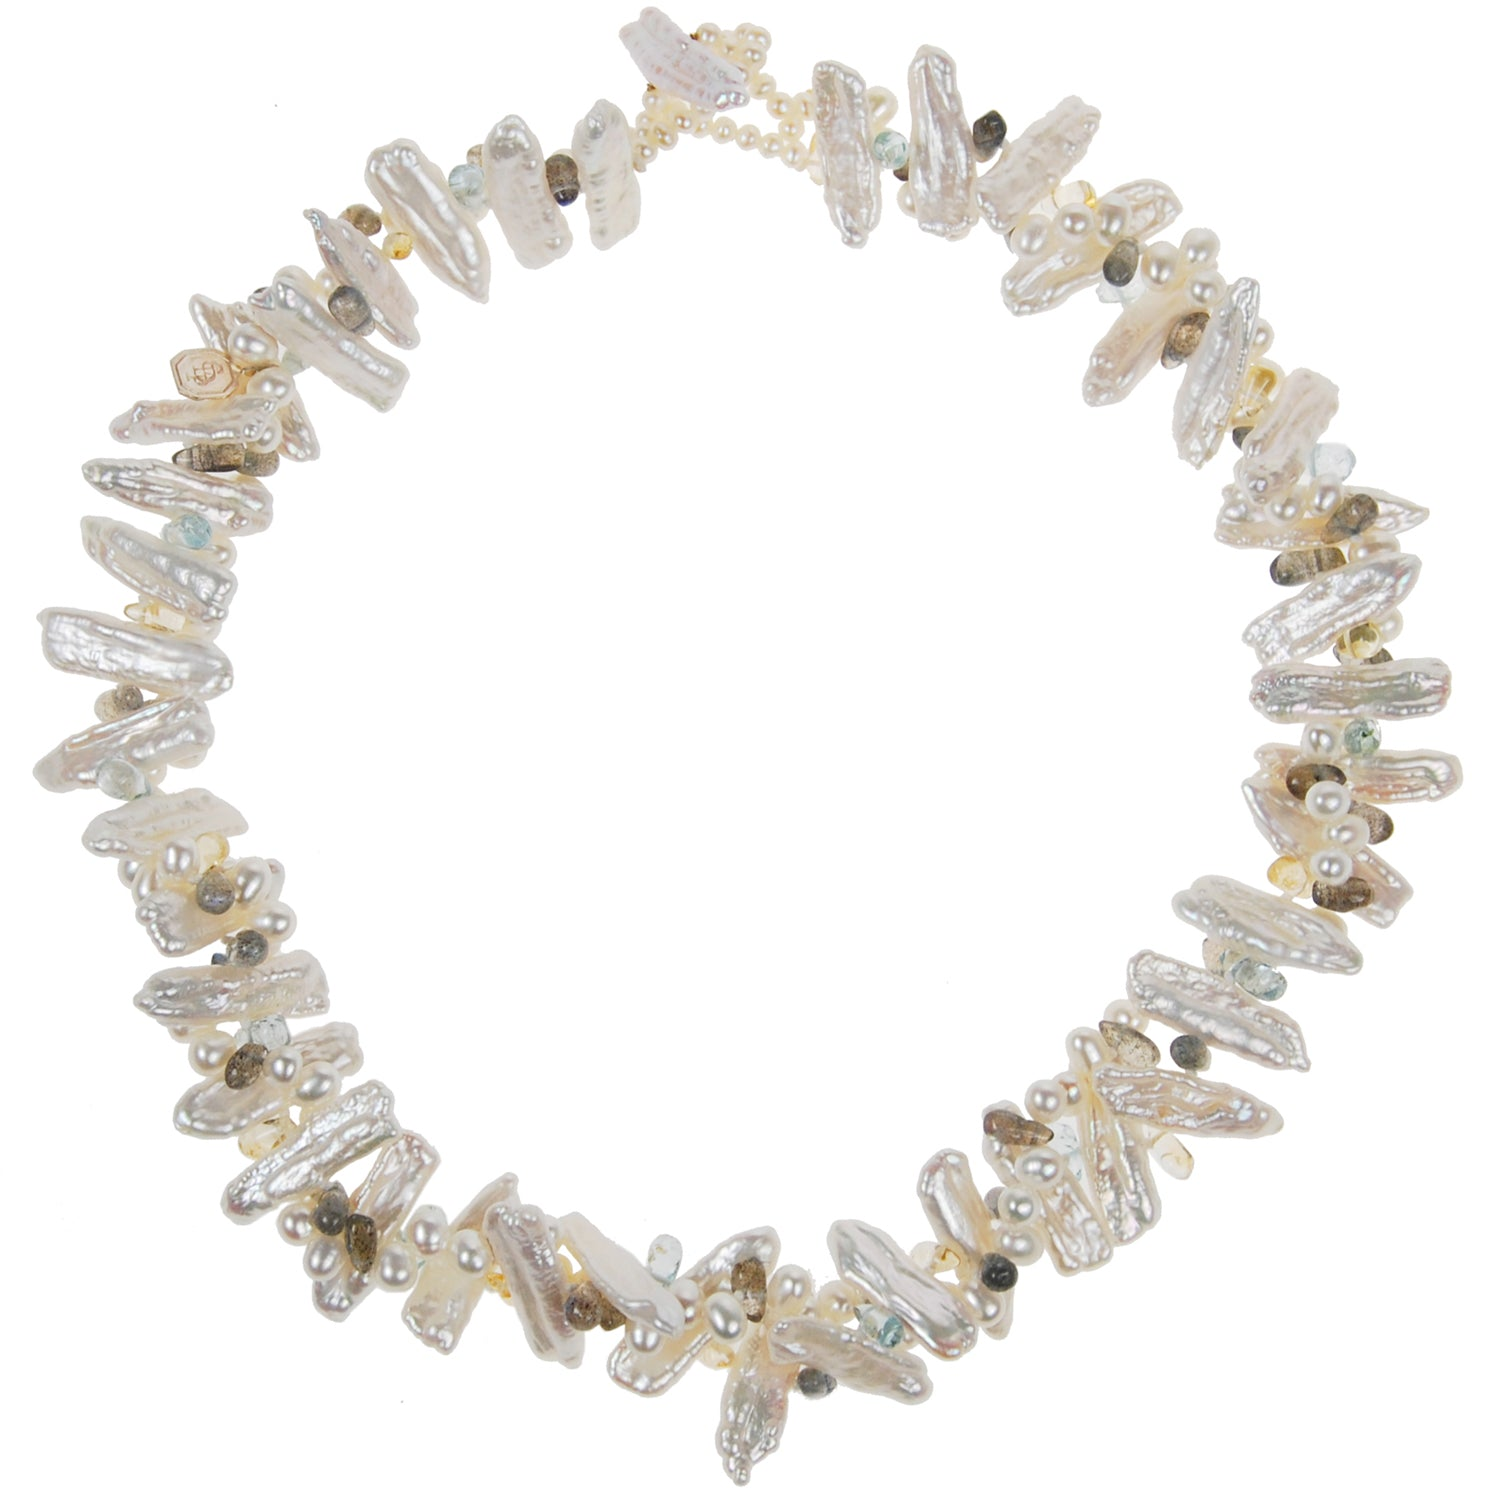 Asia' Mixed Pearl and Semi Precious Stone Necklace in White